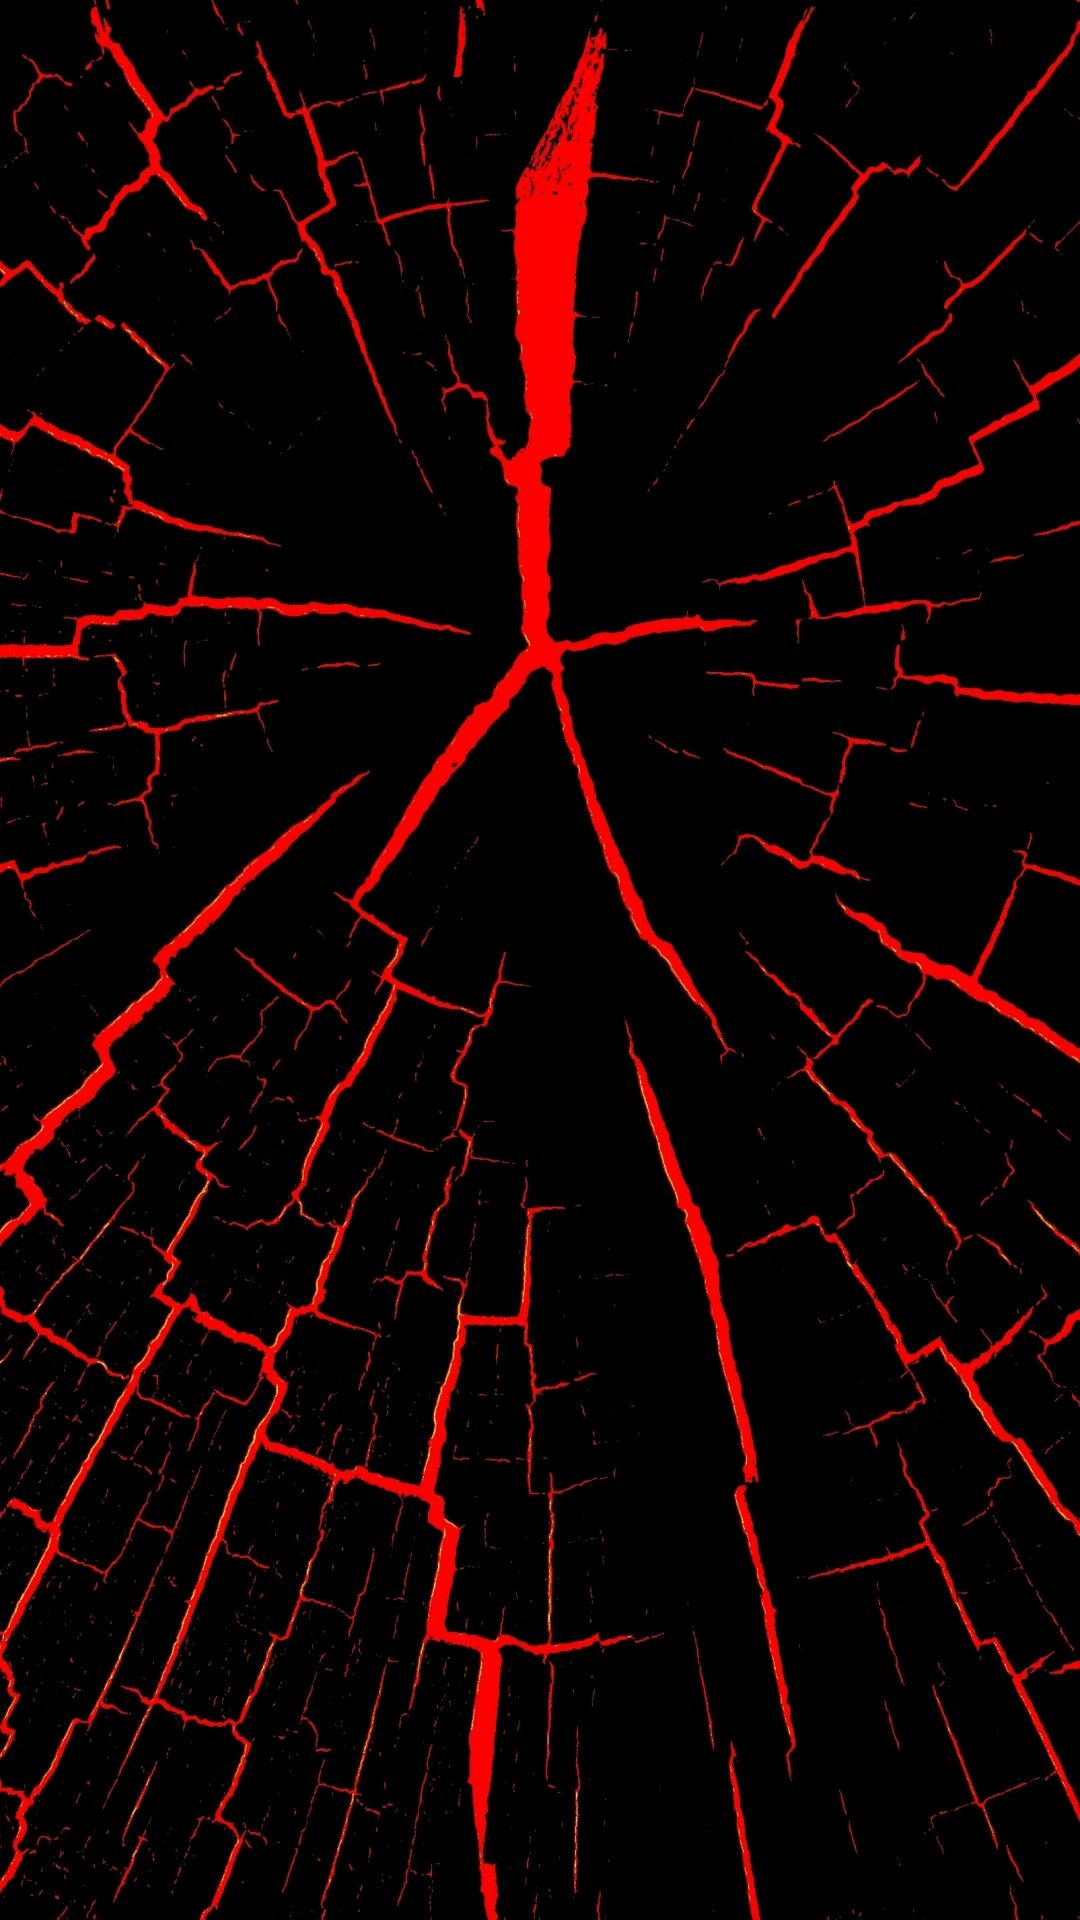 Amoled Abstract Wallpaper 154 Amoled Wallpapers Black